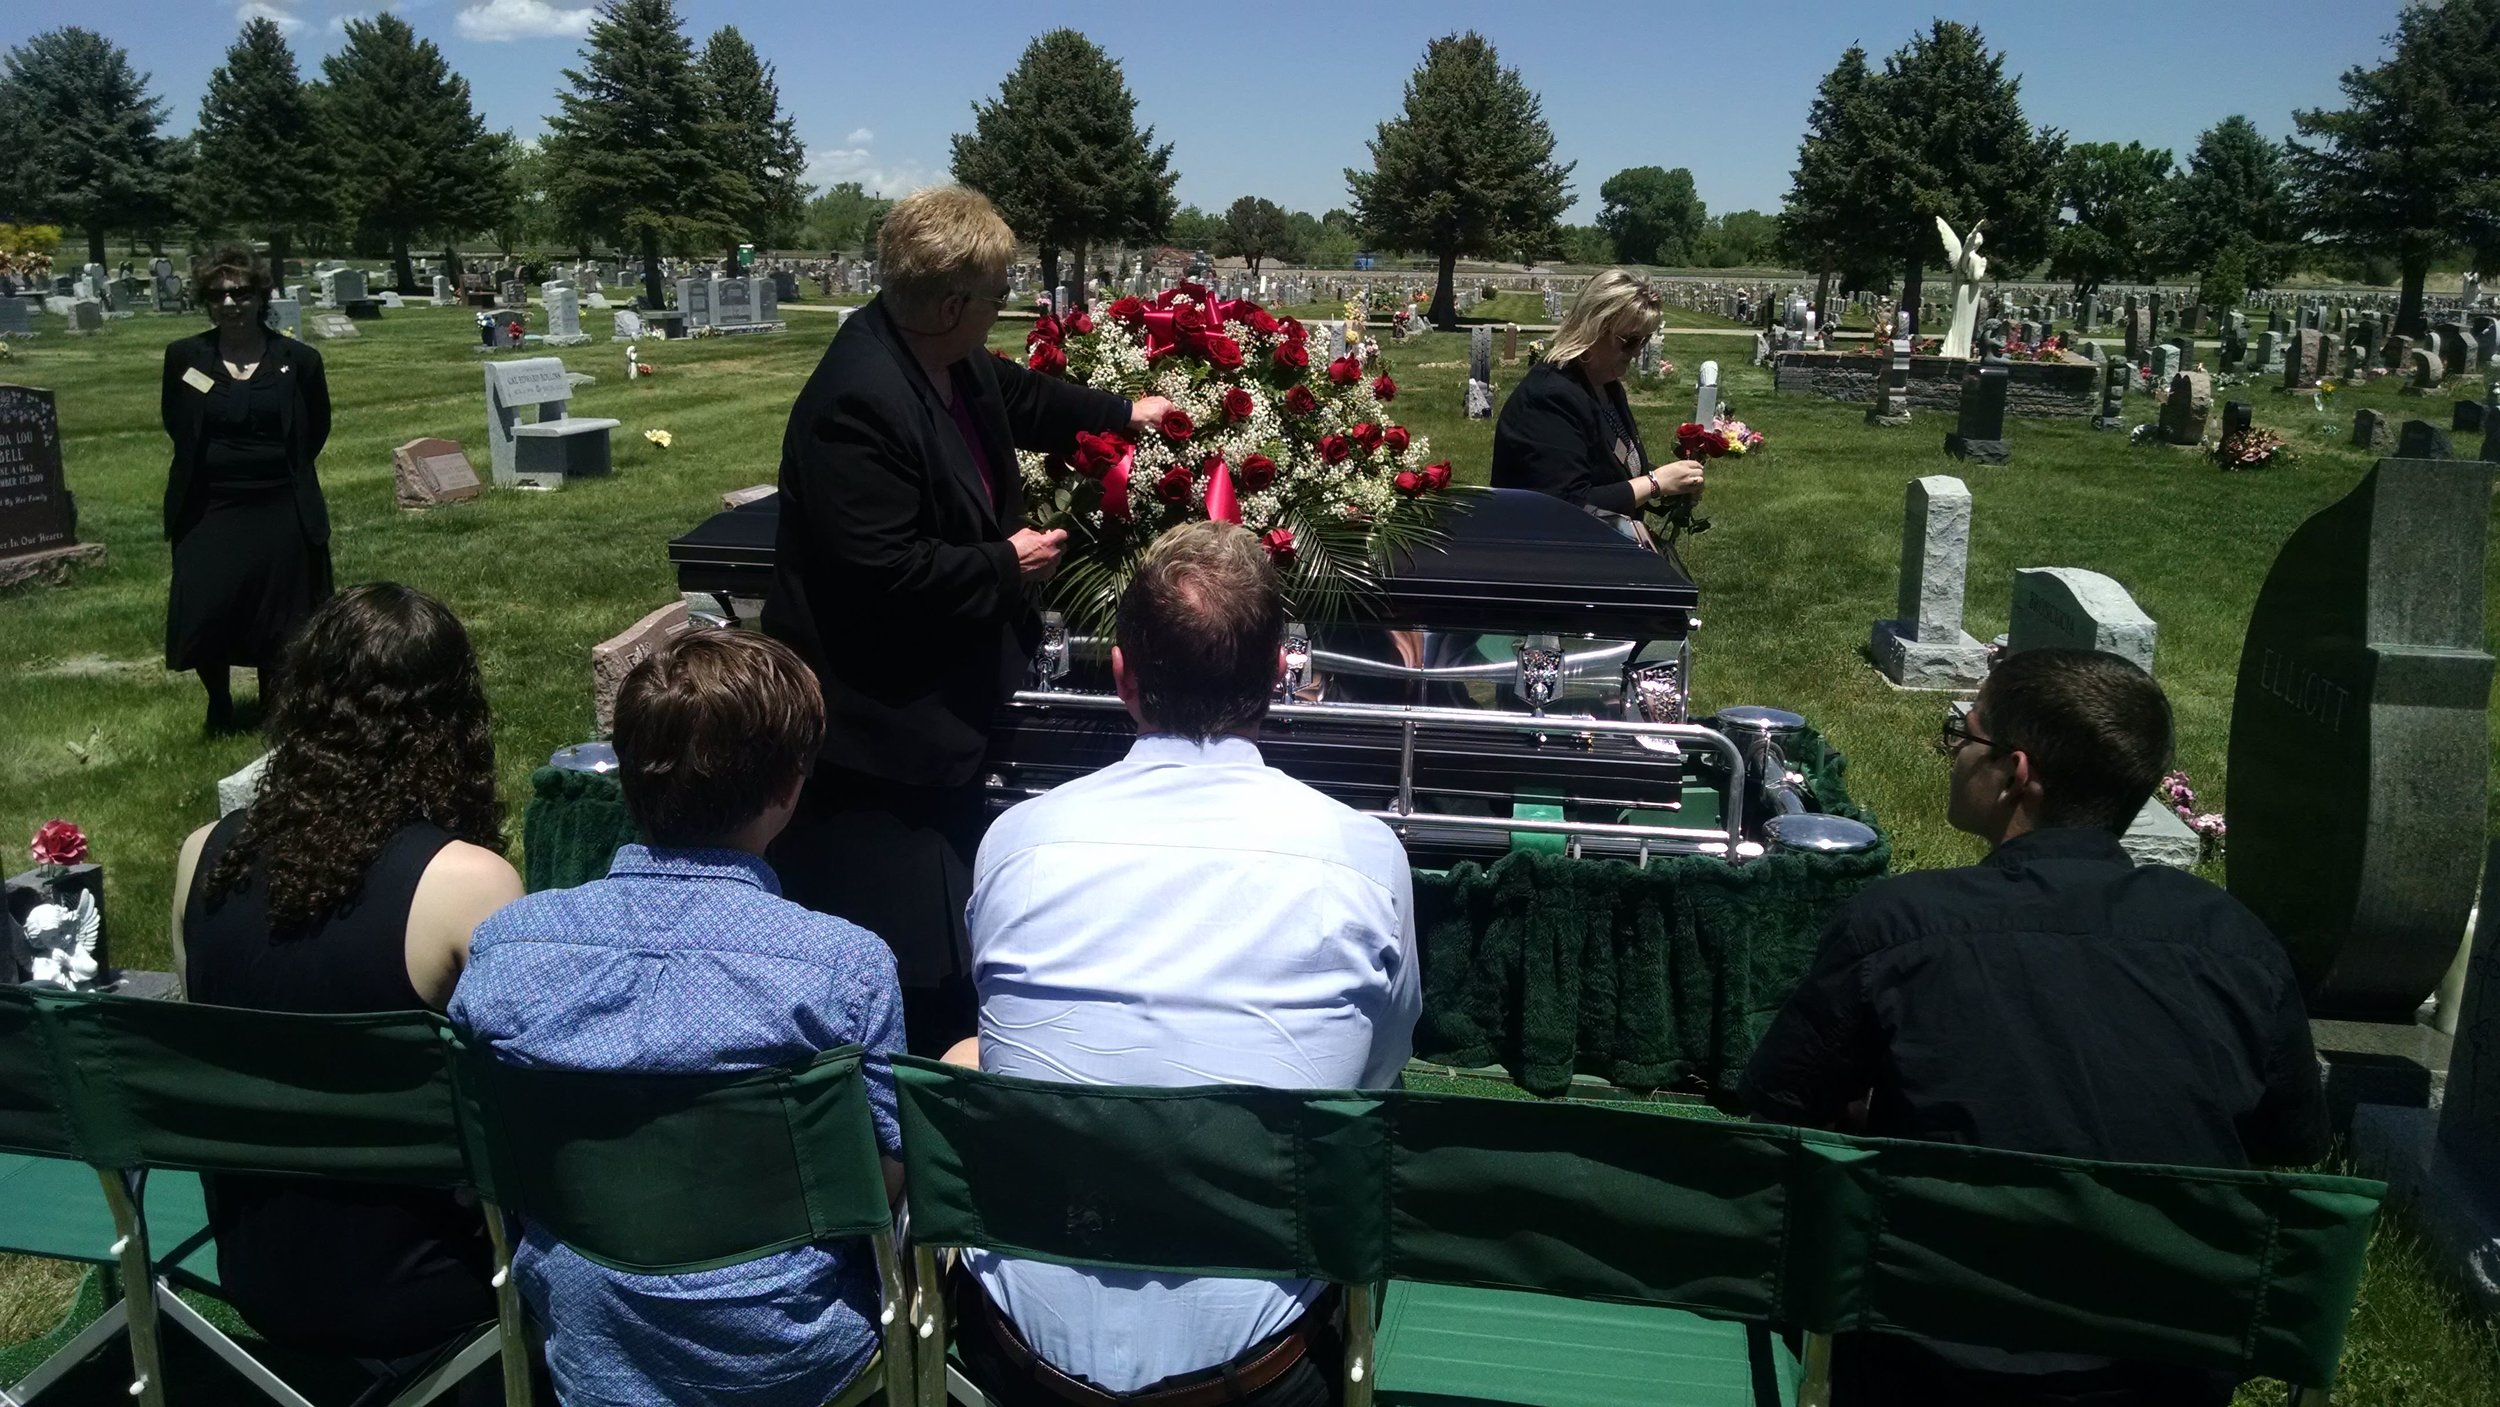 Burying the Dead - In imitation of our patron, we will attend the funeral/burial of any poor soul who has no one else to attend.